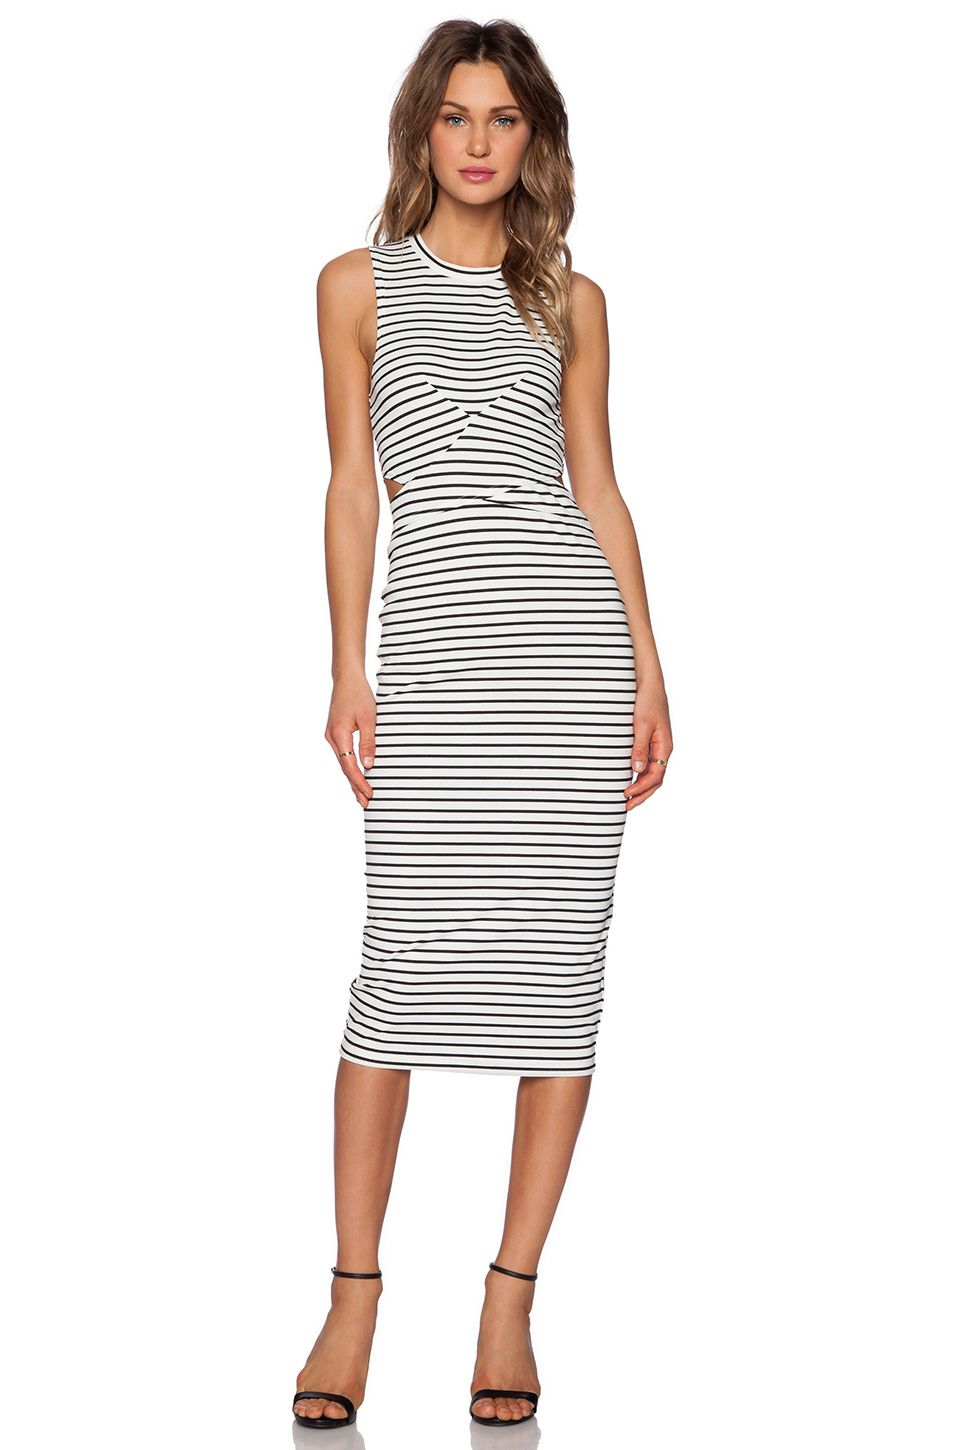 The Fifth Label Starstruck Midi Dress Stripe in White & Black